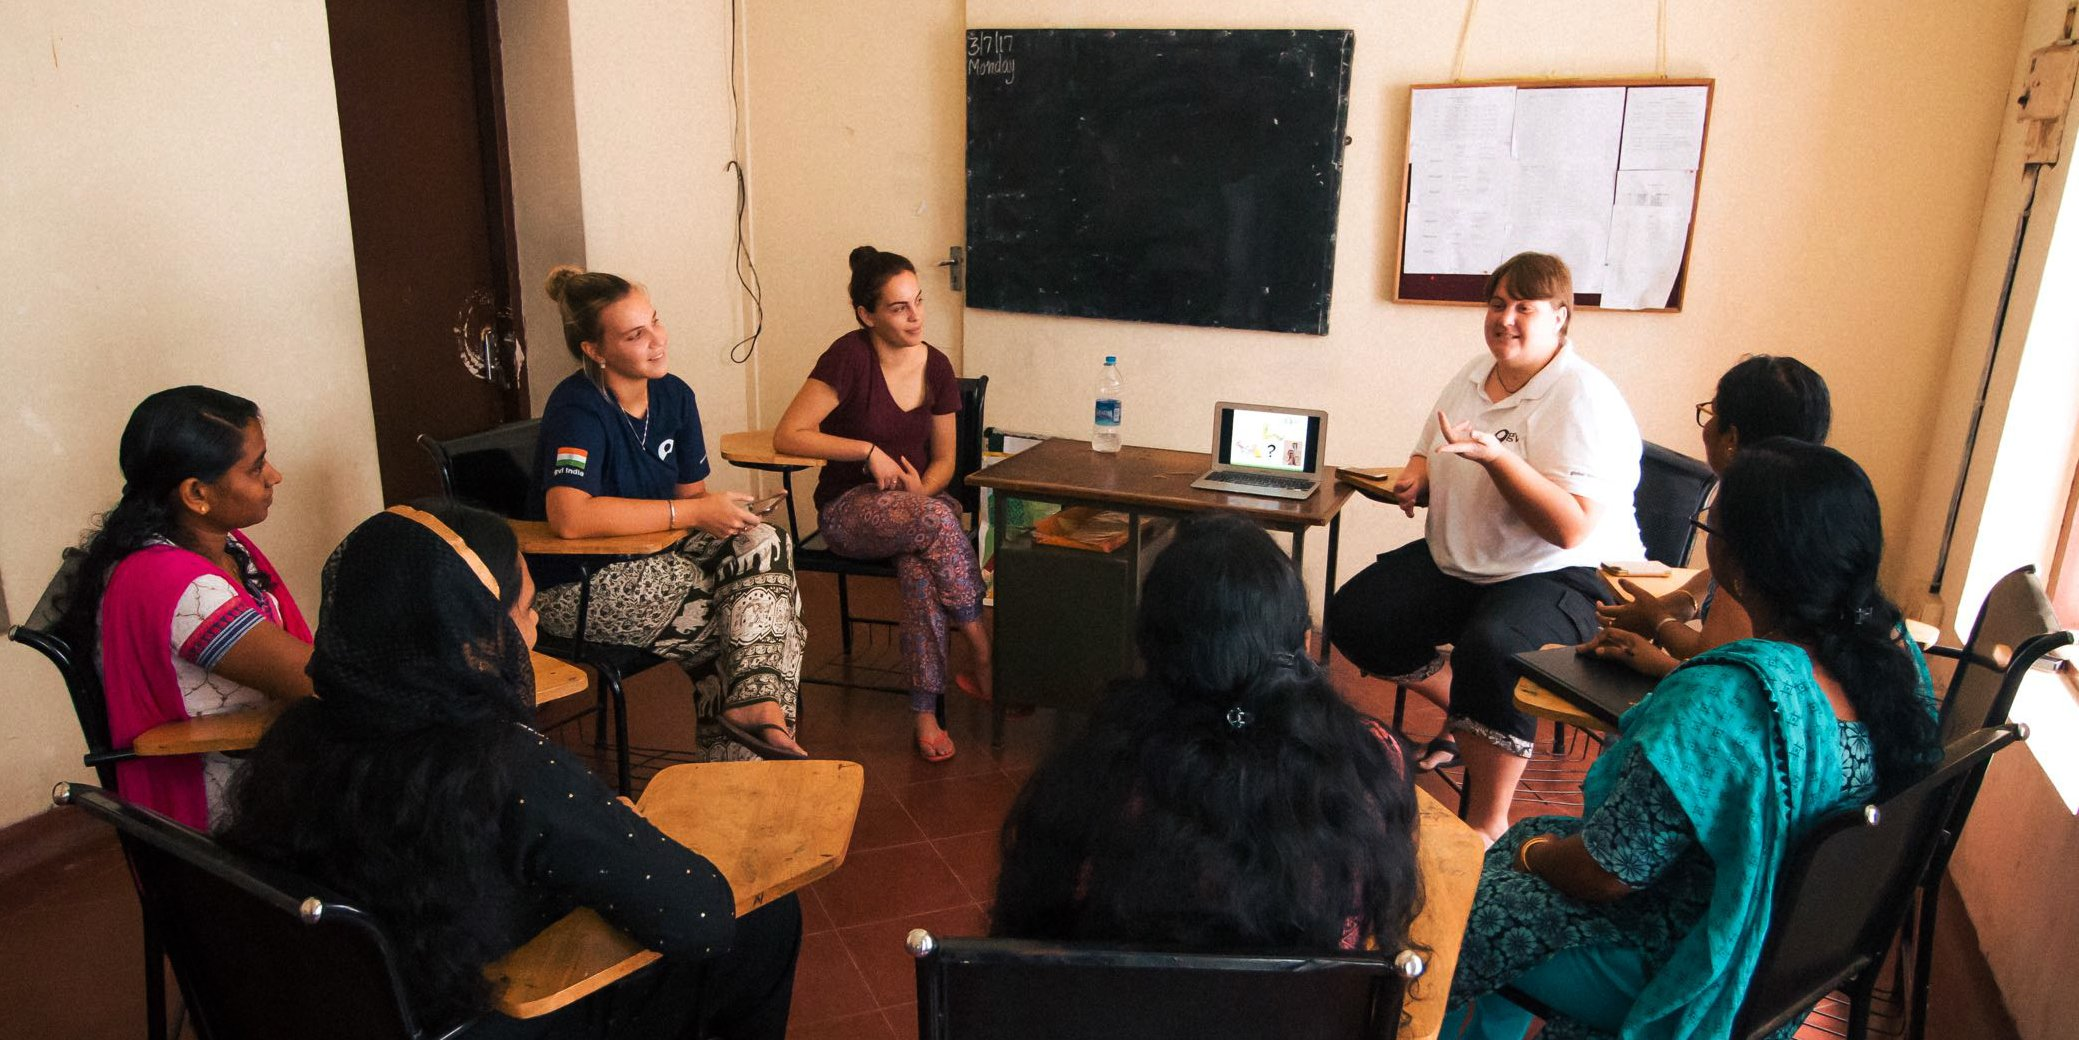 This women's empowerment program in India is one of the best volunteer abroad programs for adults. These women teach each other valuable skills, and discuss women's empowerment.